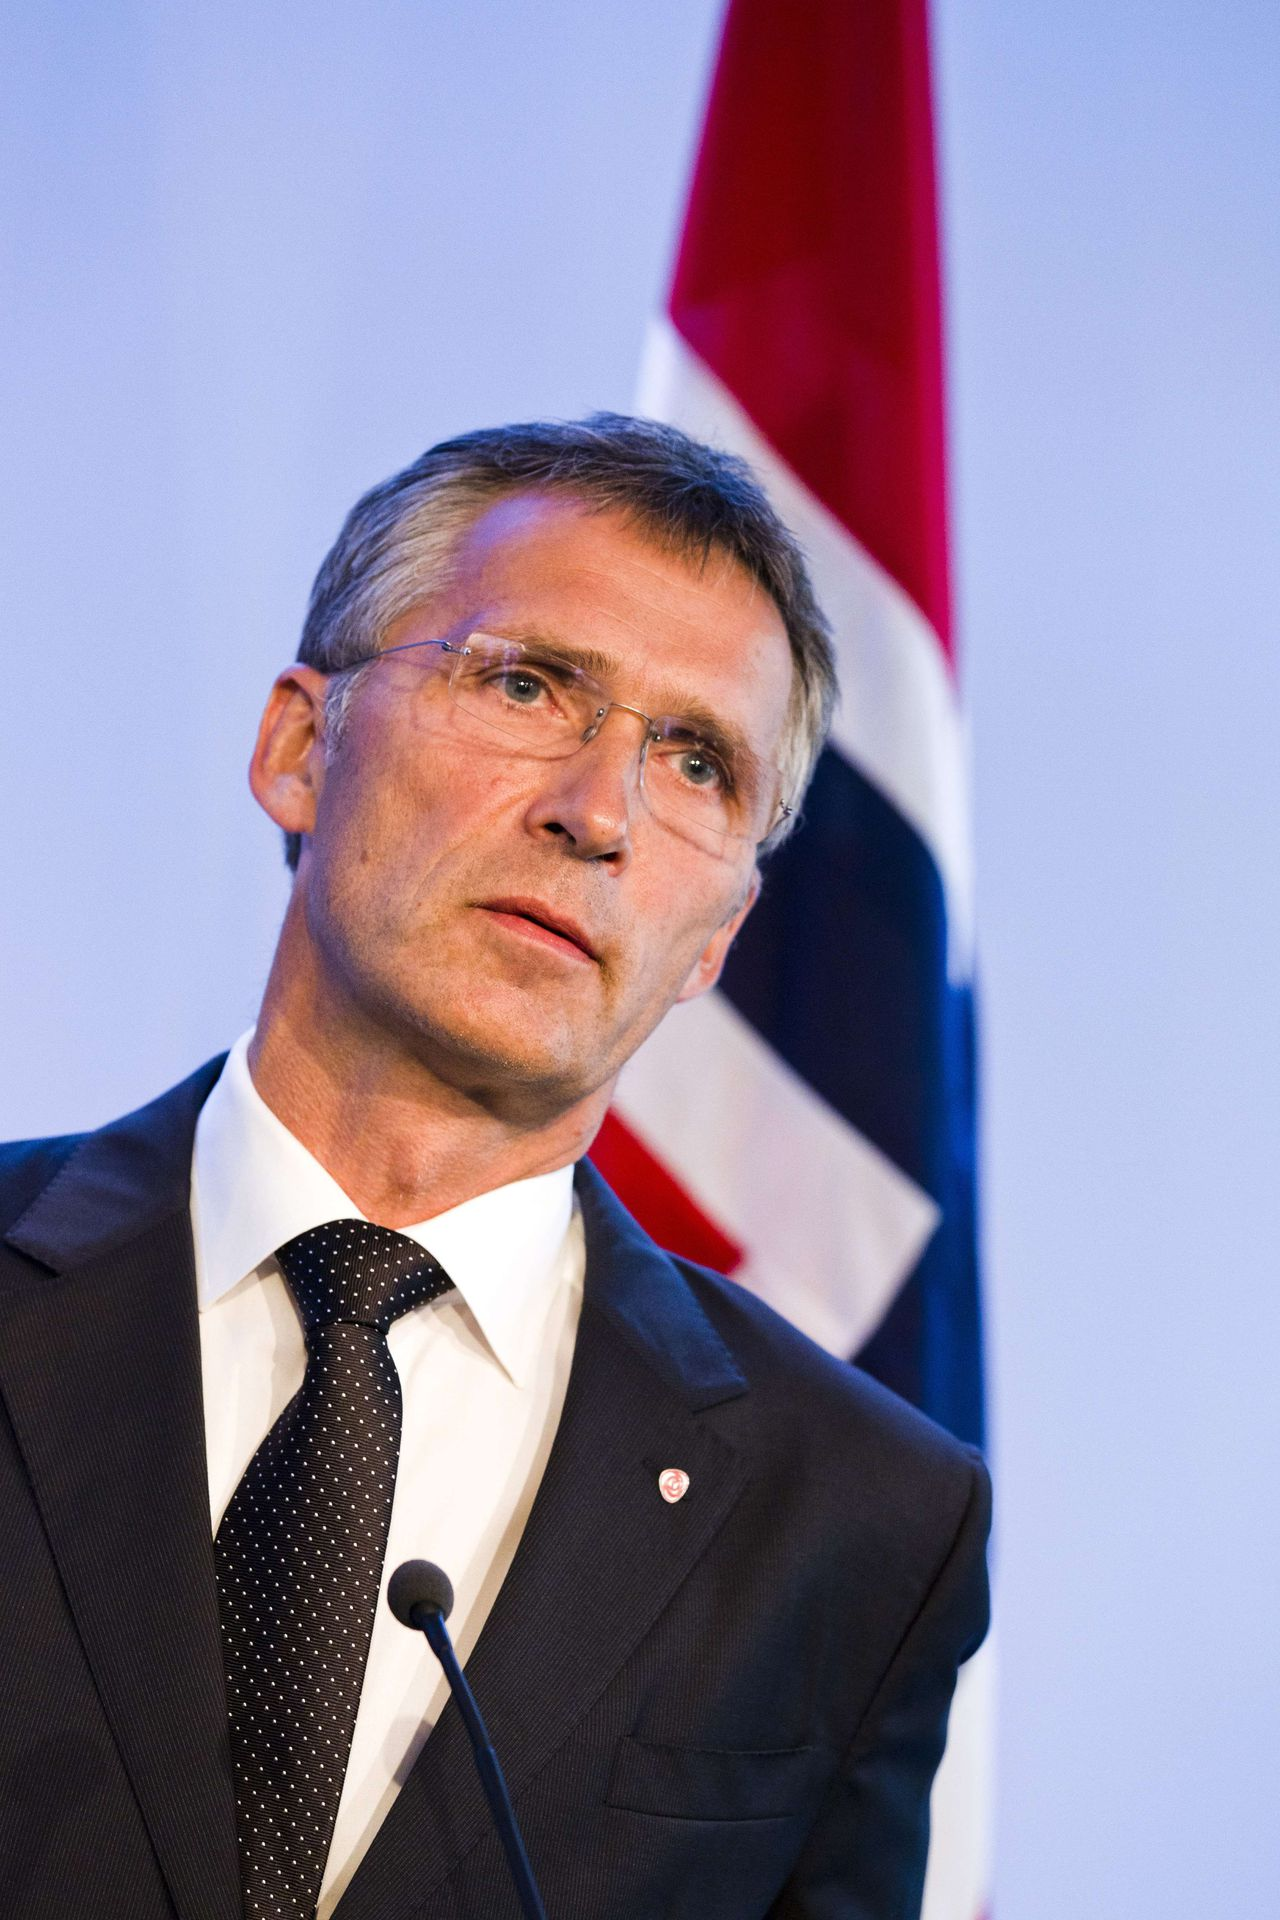 Norwegian prime minister Jens Stoltenberg is pictured at a press conference in Oslo on July 27, 2011. Norwegian Prime Minister Jens Stoltenberg said that Oslo will review and assess the country's security measures after the current period of national grieving. AFP PHOTO/ Berit Roald / Scanpix Norway